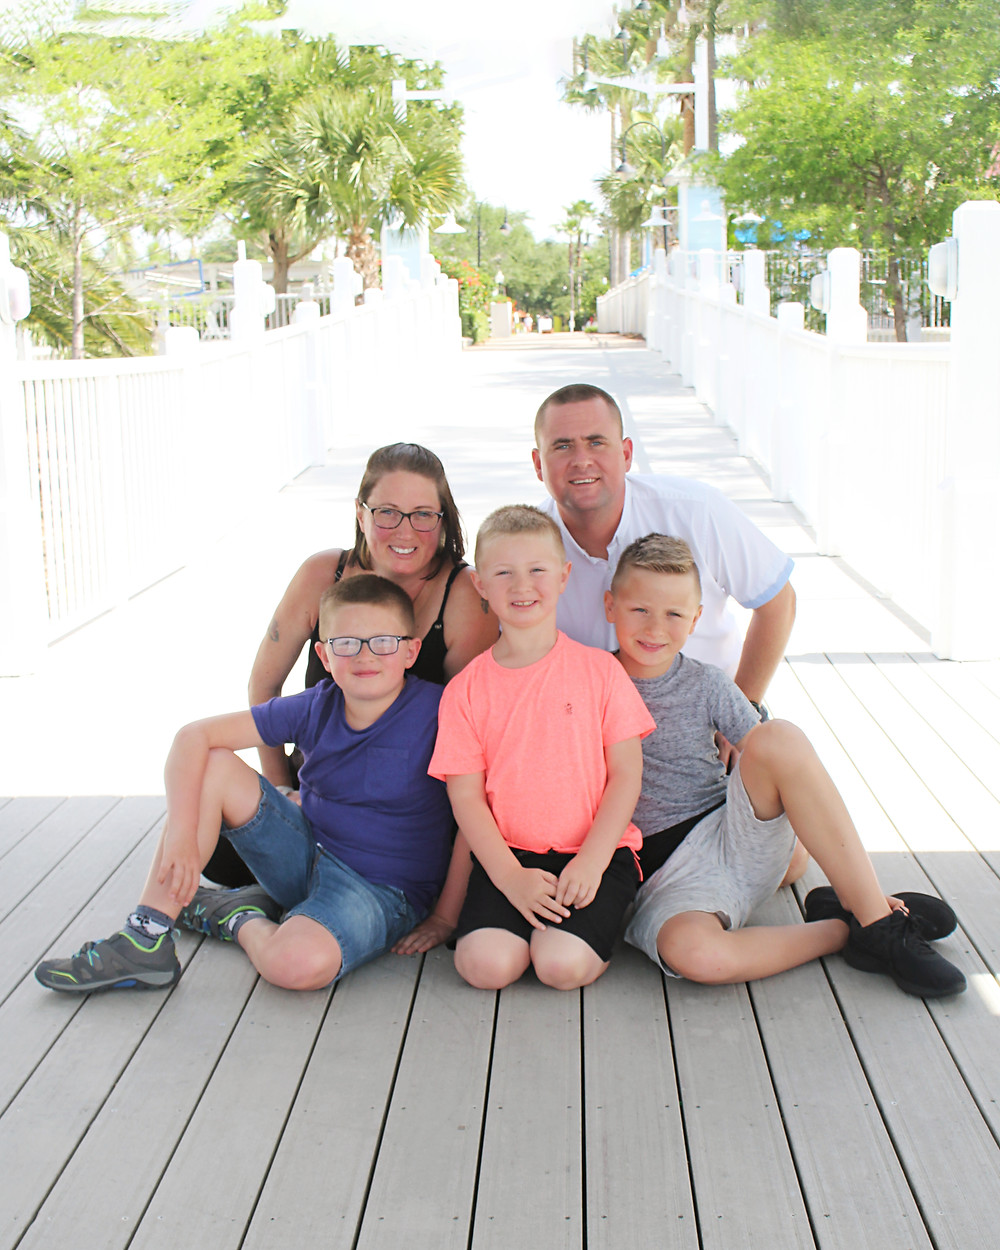 Michelle from Little Feet Photography with husband and her boys